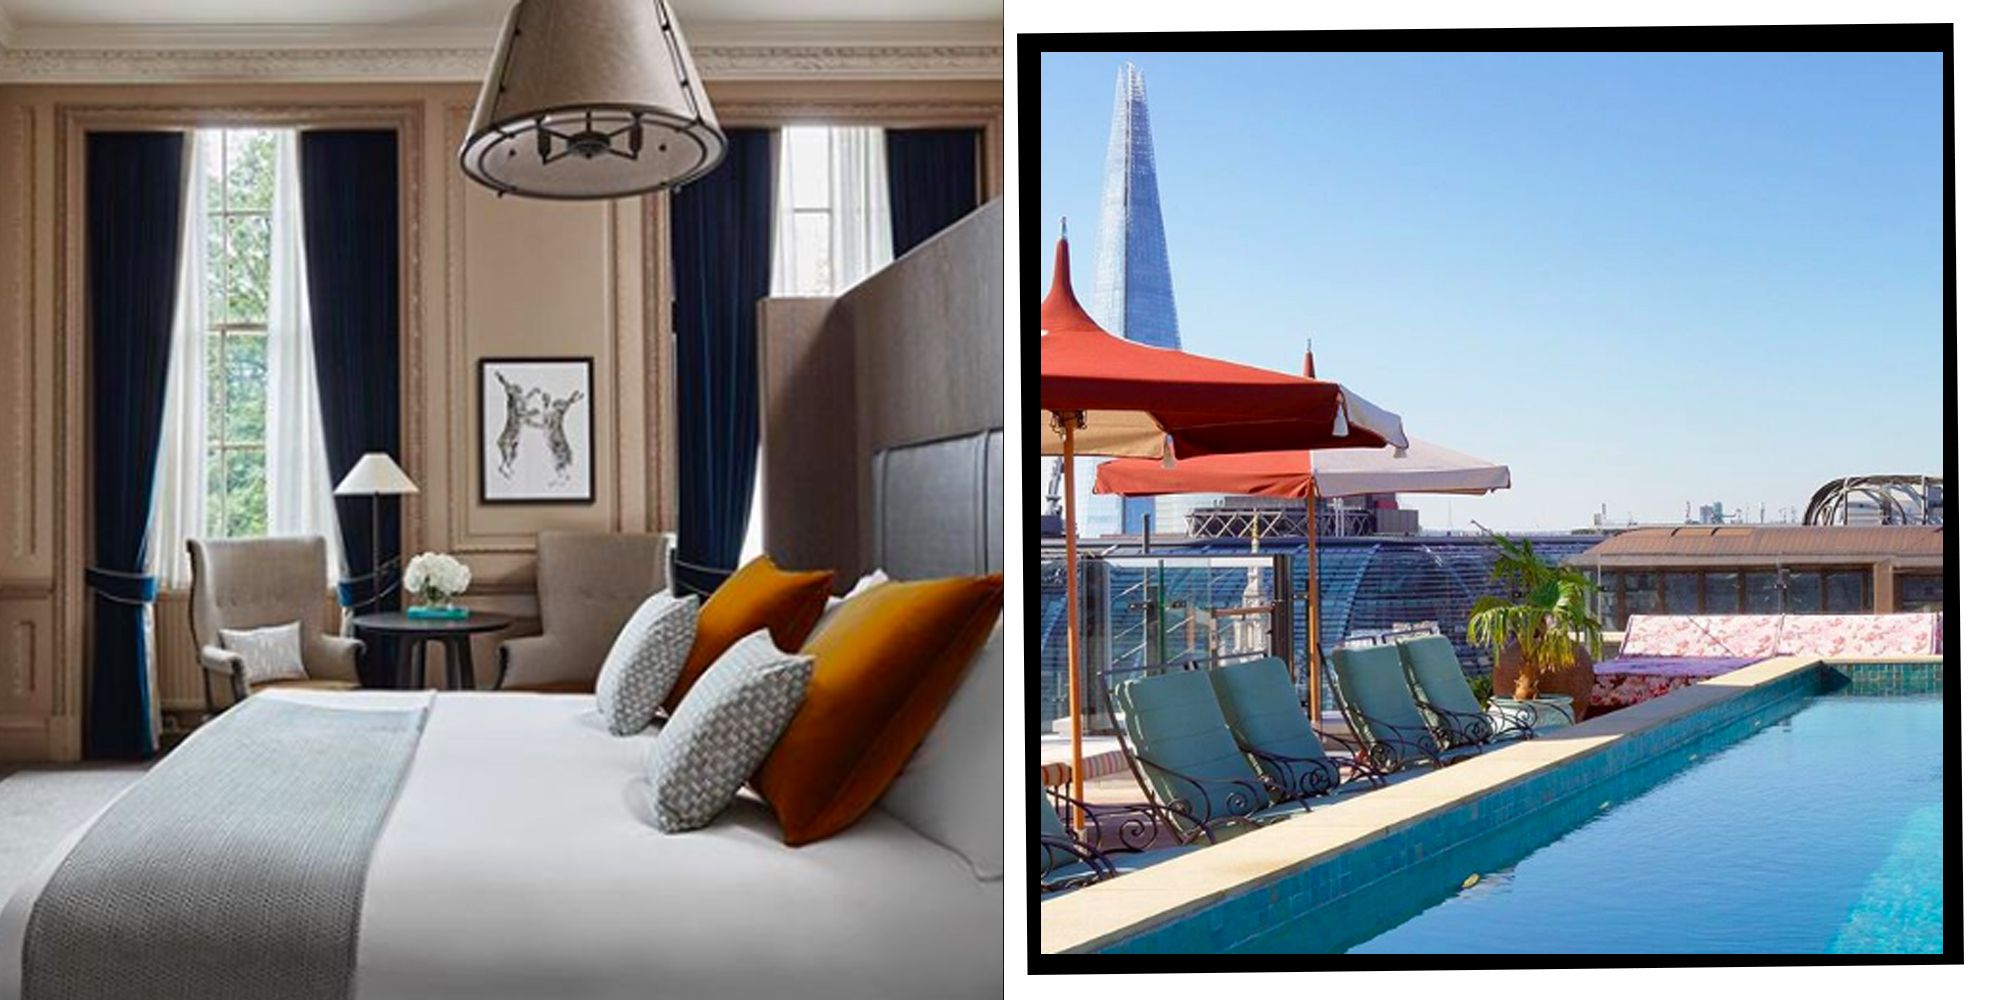 5 Of The Best New Year's Eve Hotel Stays To Book Now And Avoid That Midnight Sofa Snooze